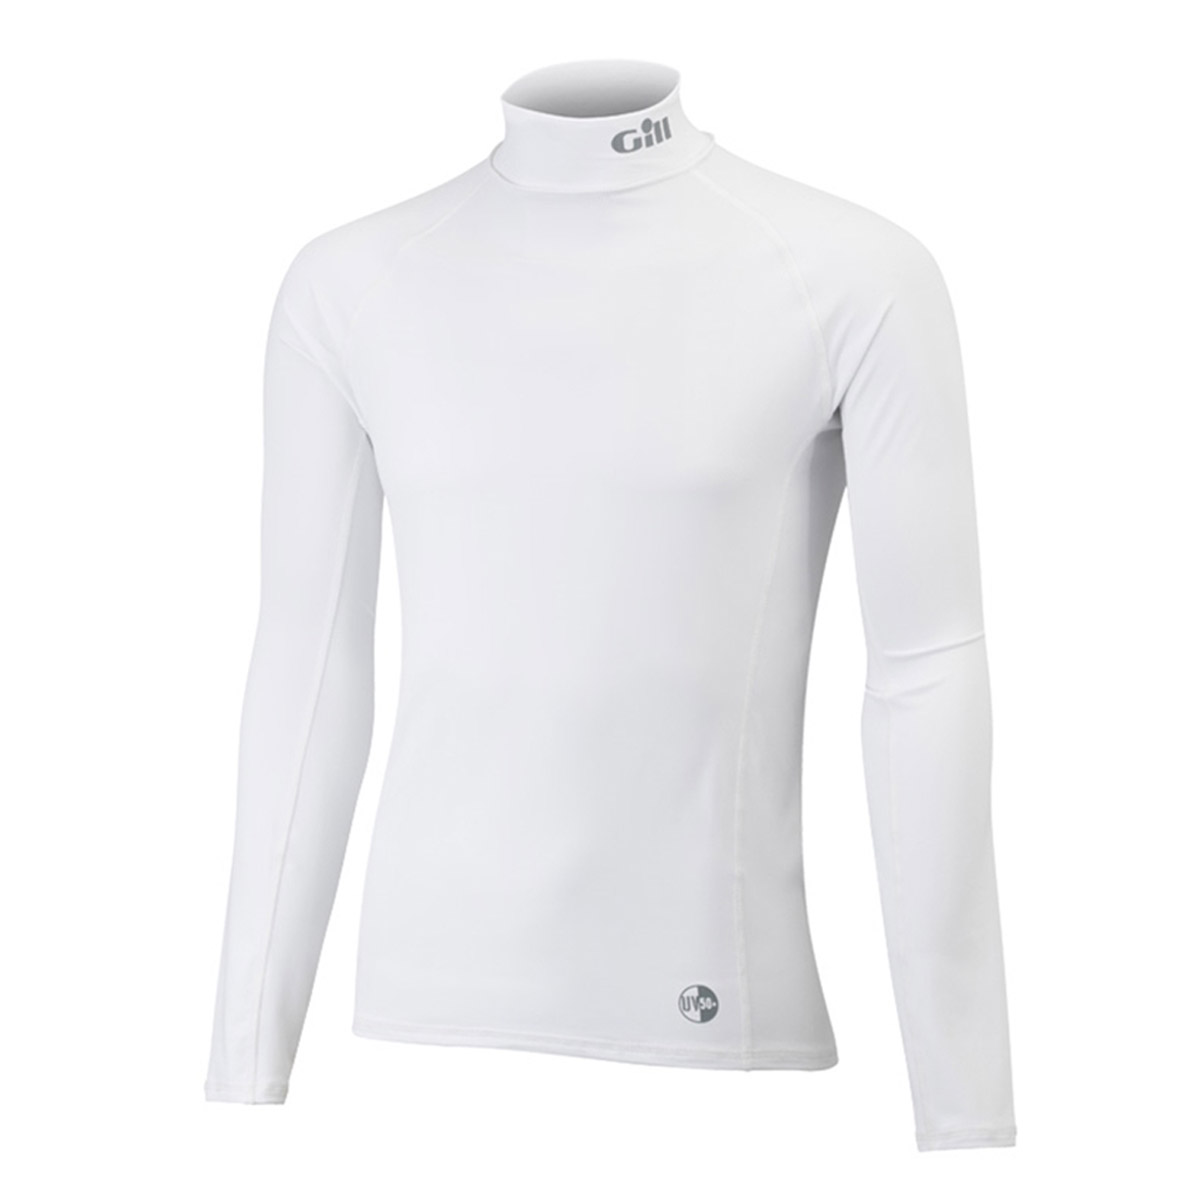 GILL UV RASH GUARD L/S (4423)